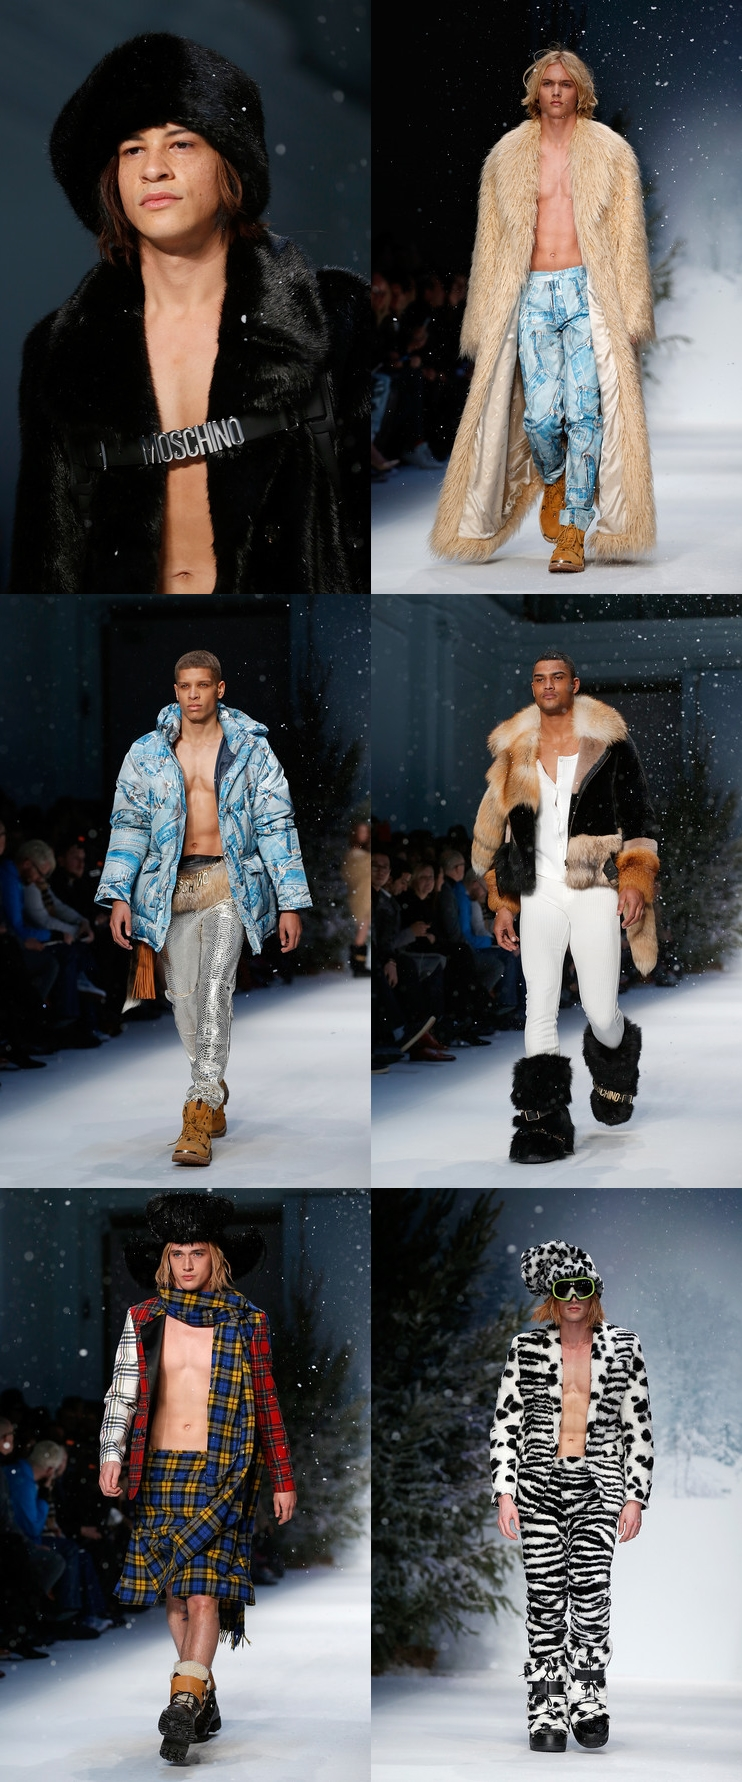 Moschino+Runway+London+Collections+Men+AW15+alex cursino, fashion blogger, moda sem censura, tendencia masculina, estilo masculino, moda masculina, fashion blogger, blogger, 5